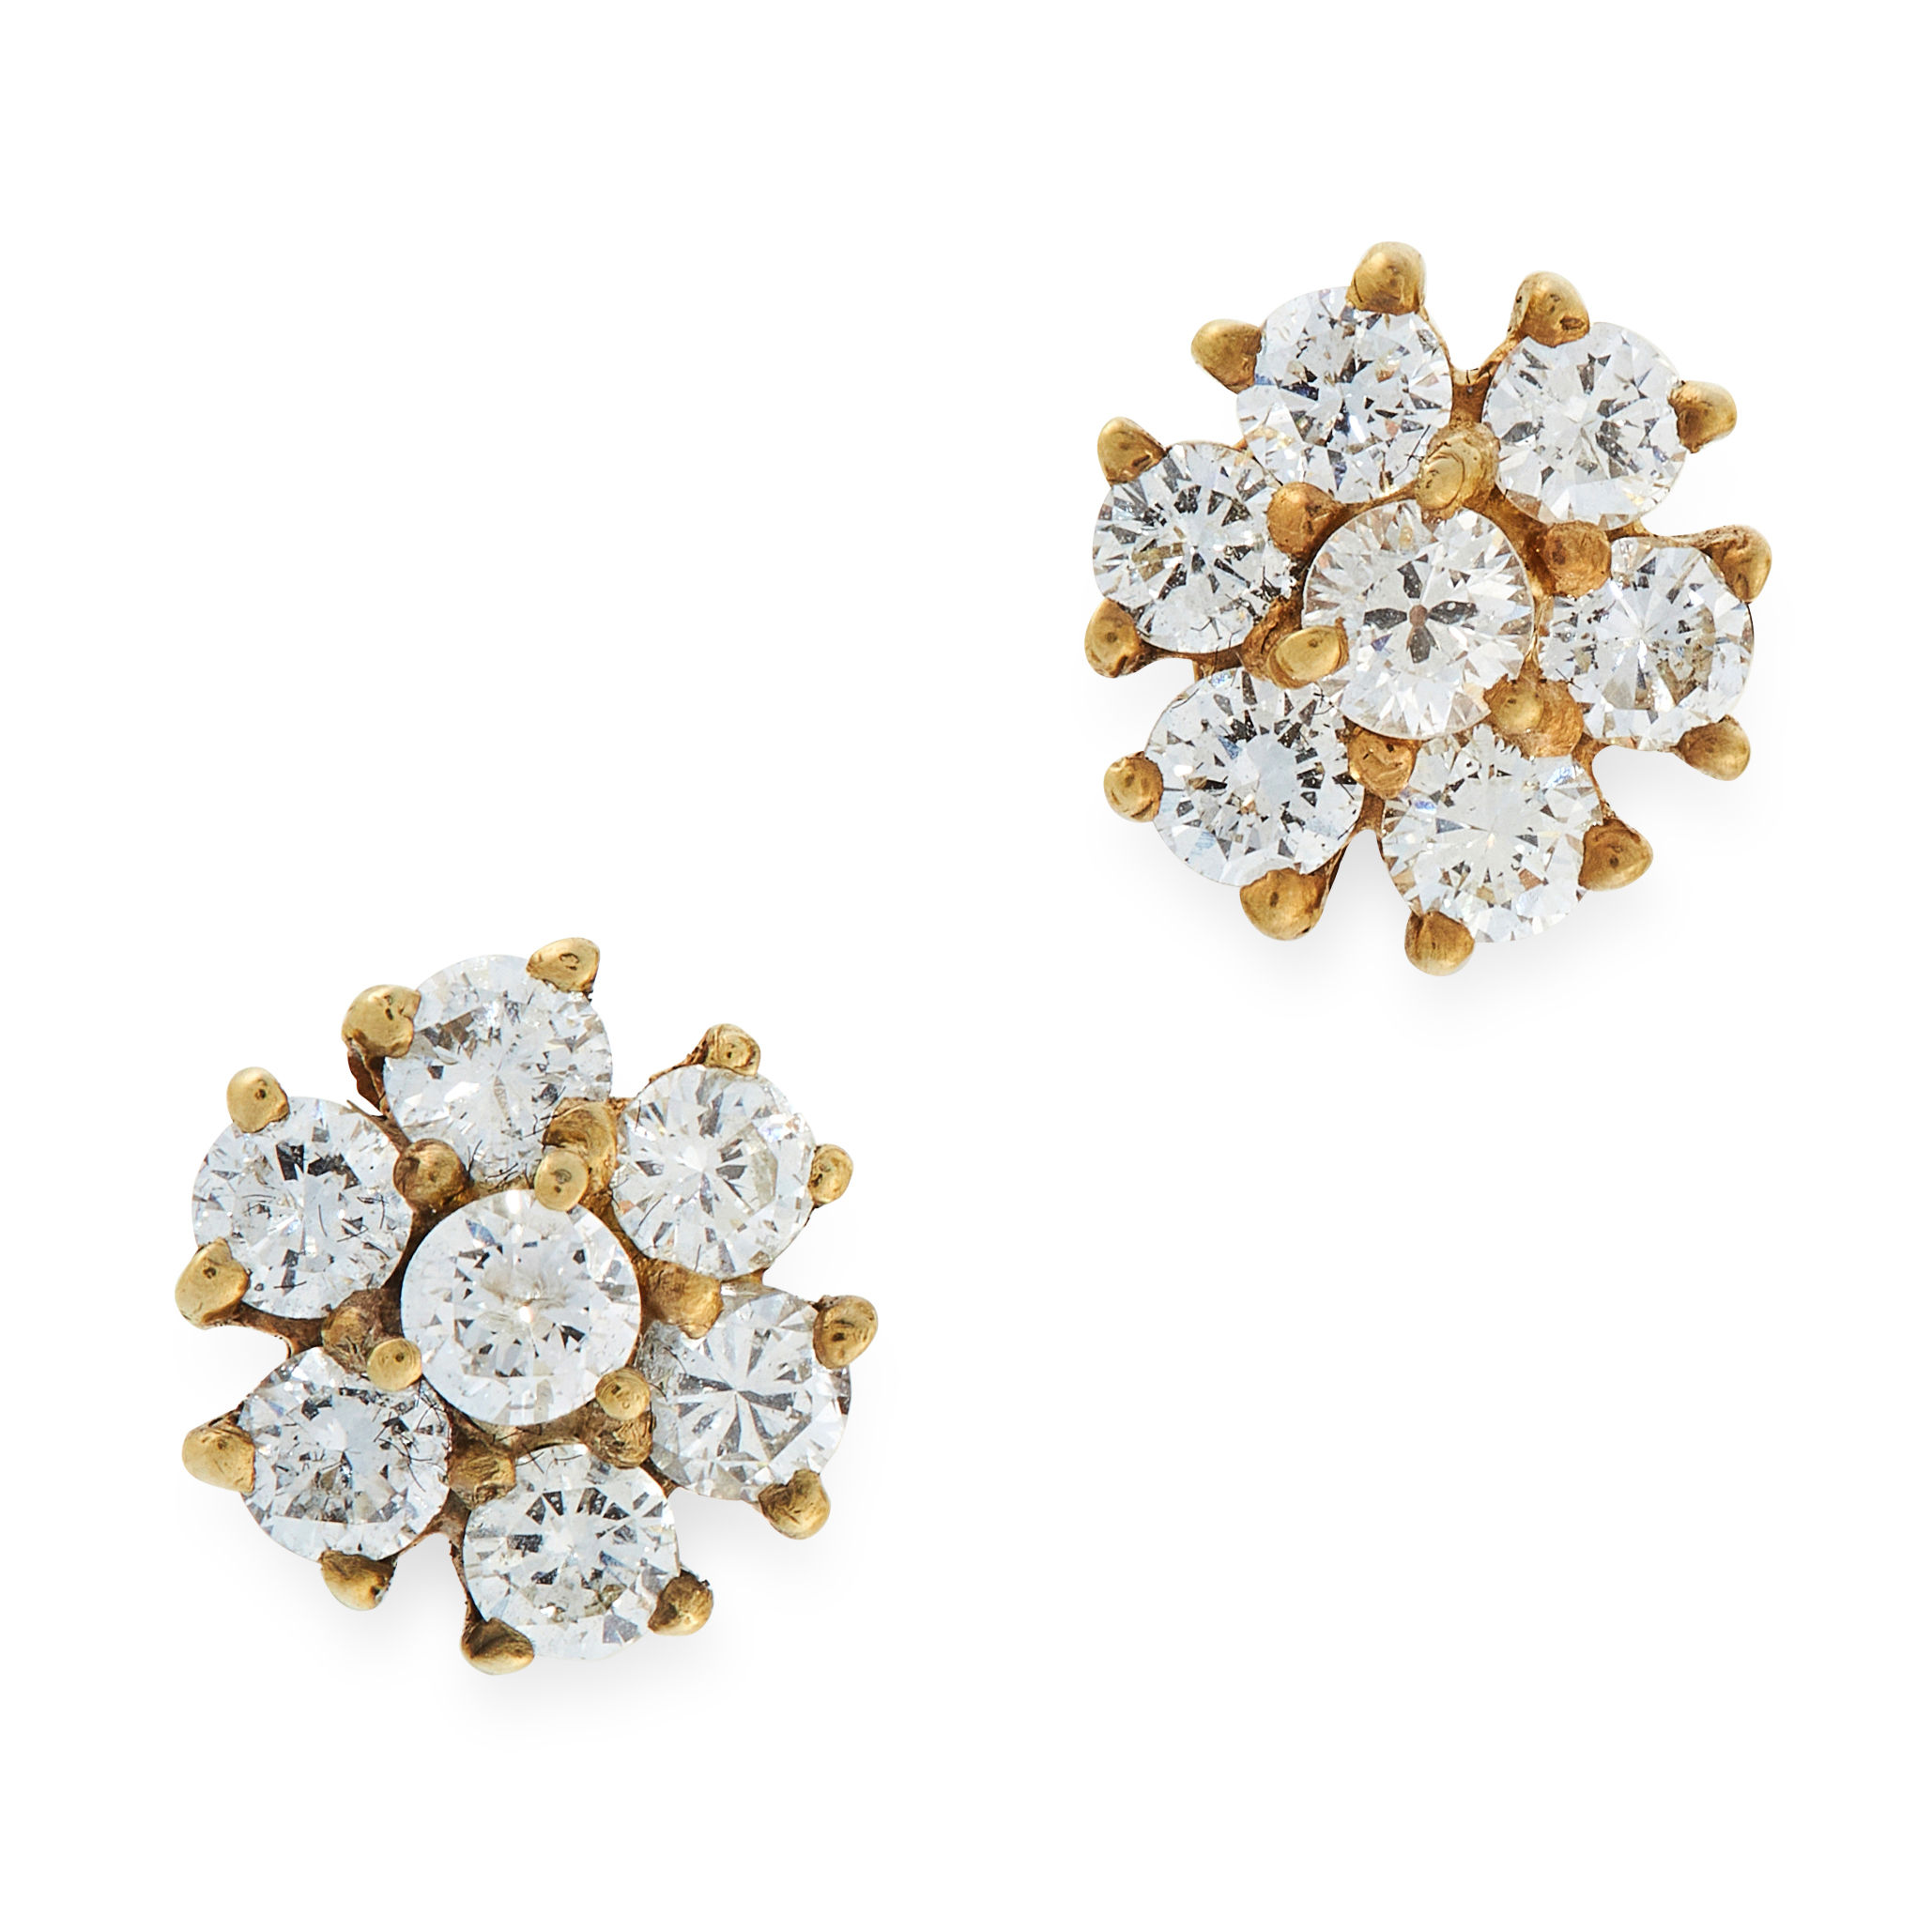 A PAIR OF DIAMOND CLUSTER STUD EARRINGS in 18ct yellow gold, each set with a cluster of seven